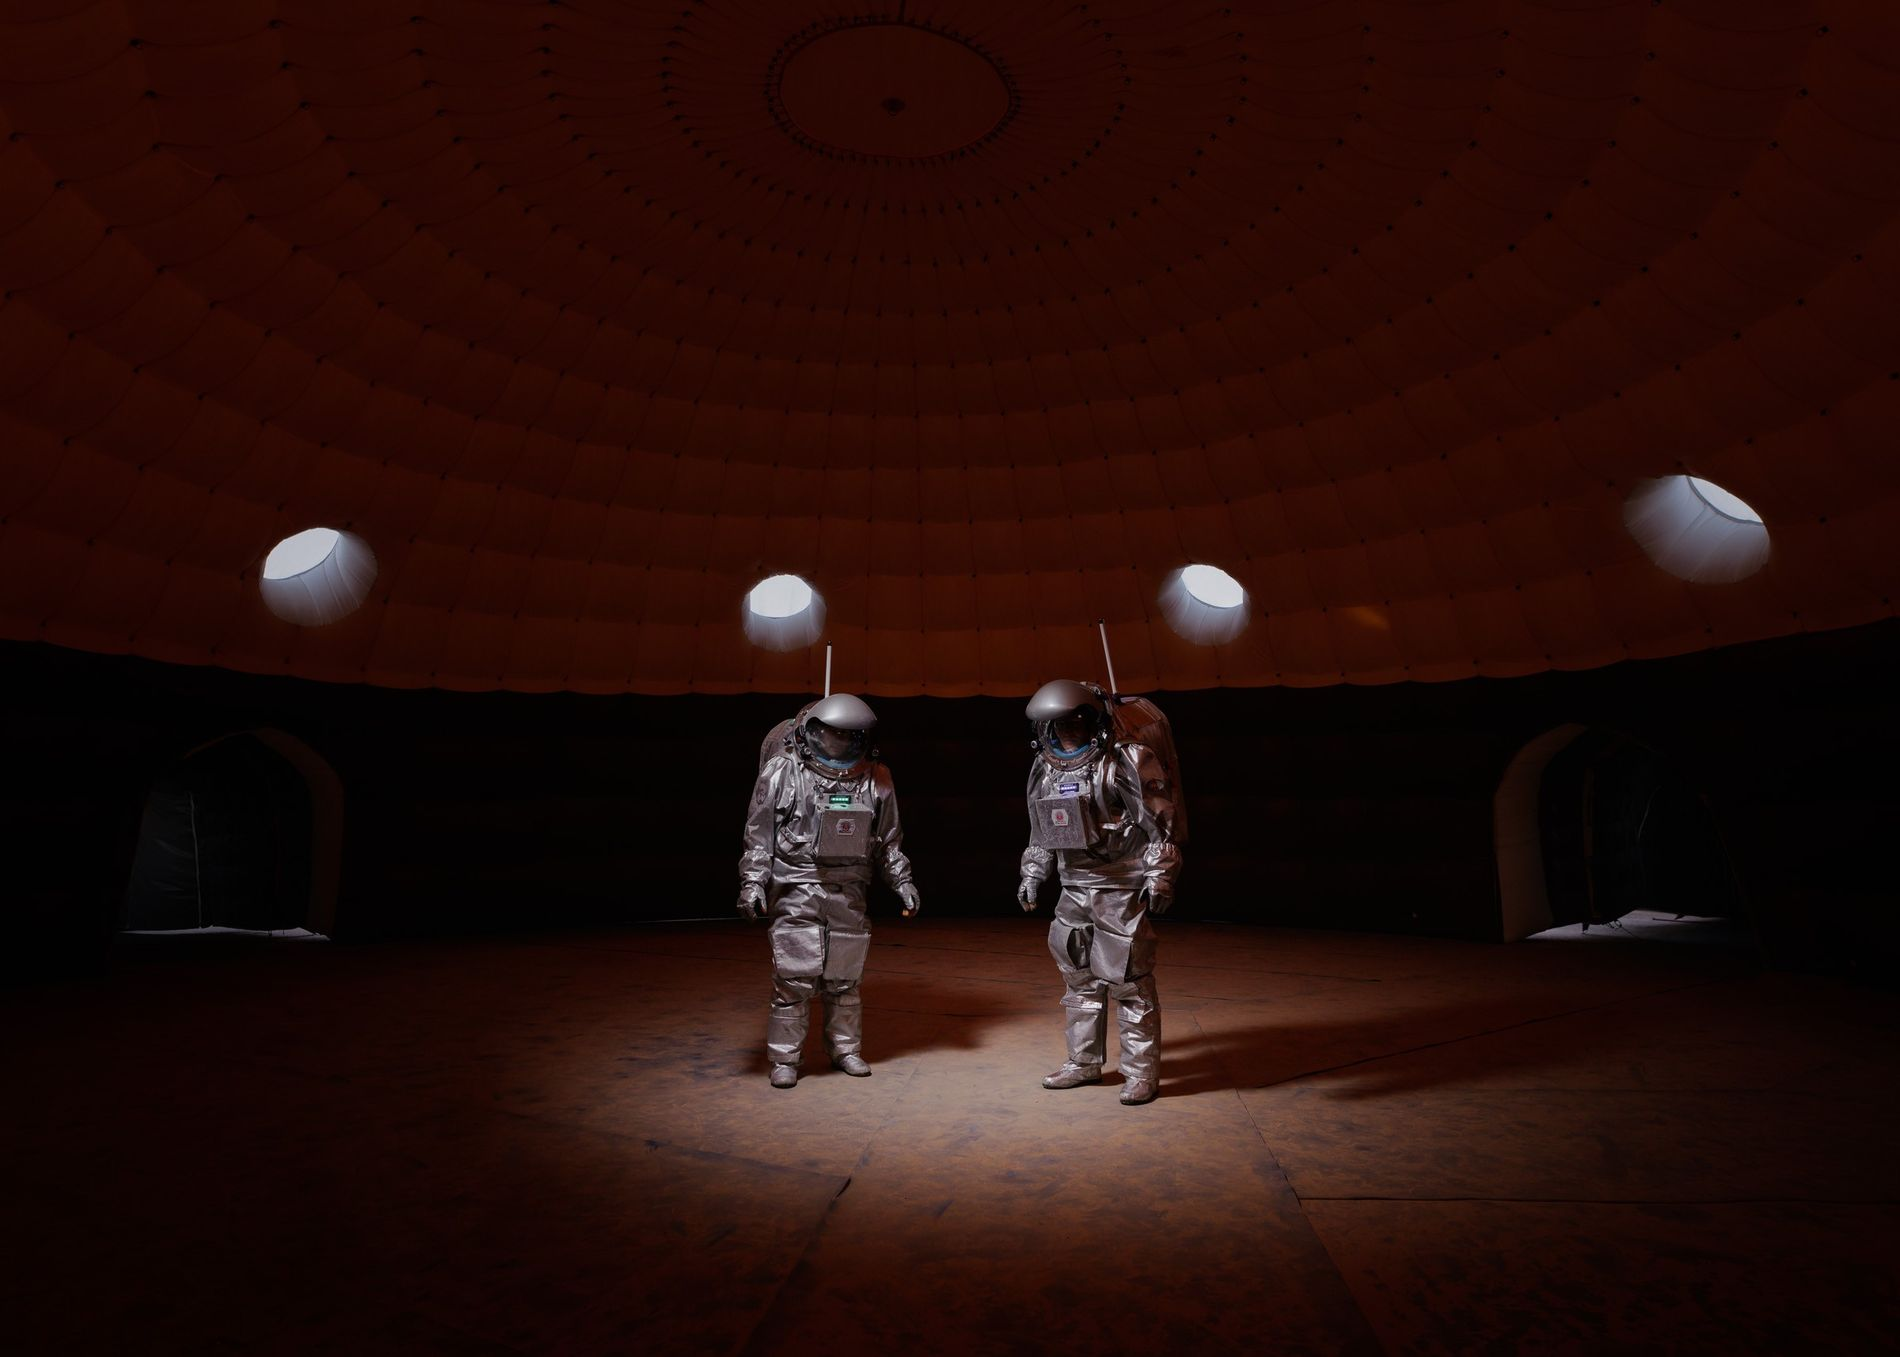 Crew members Gernot Grömer and João Lousada stand inside the habitat module of Kepler Station, the ...